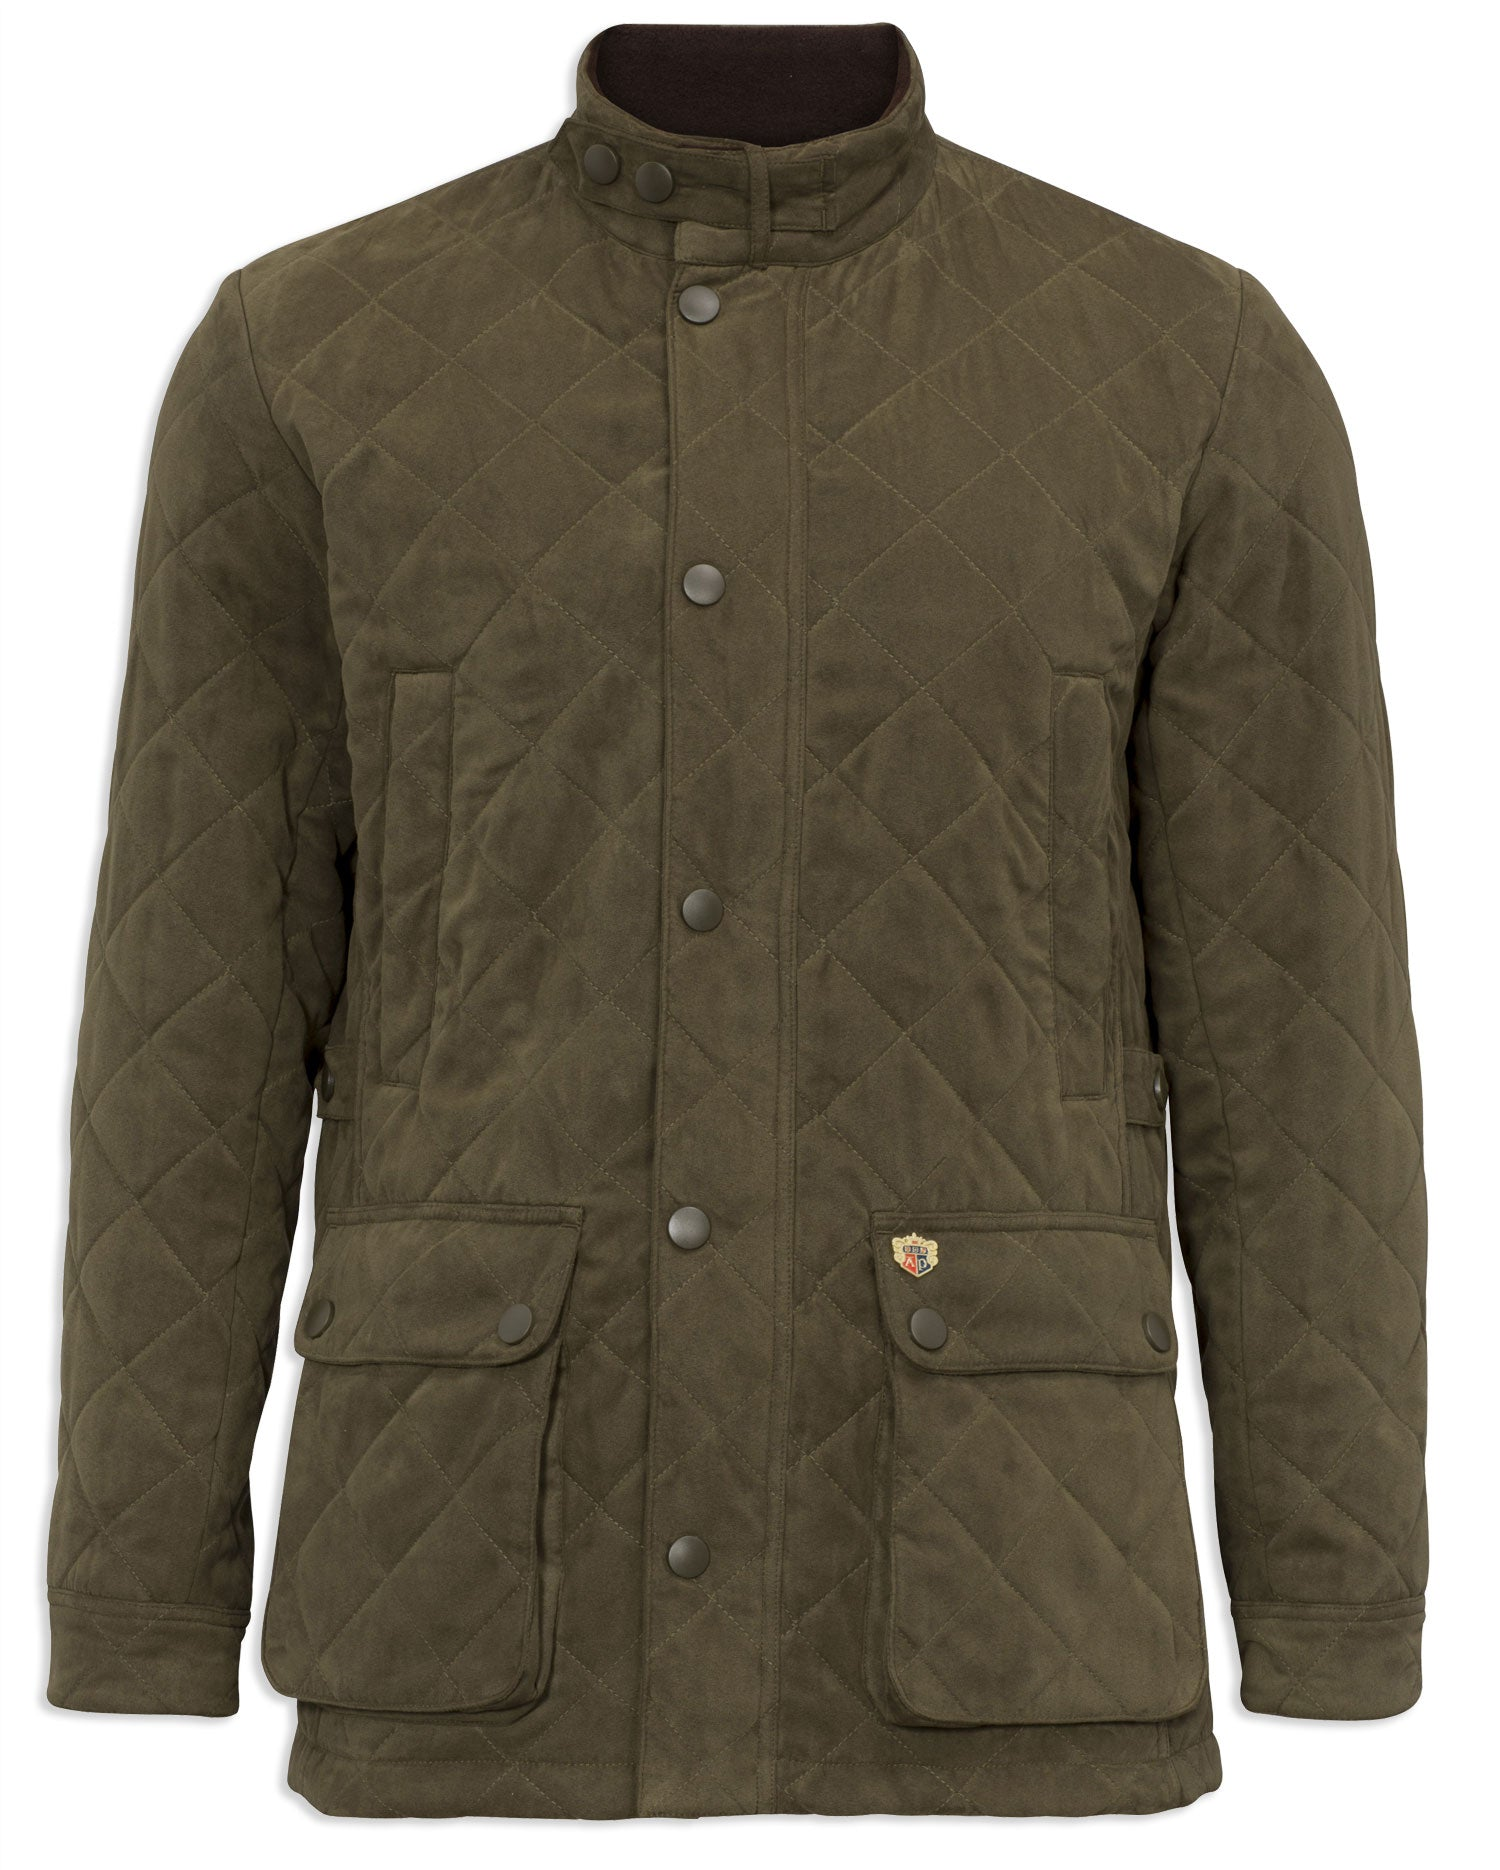 Felwell Men's Quilted Jacket by Alan Paine olive